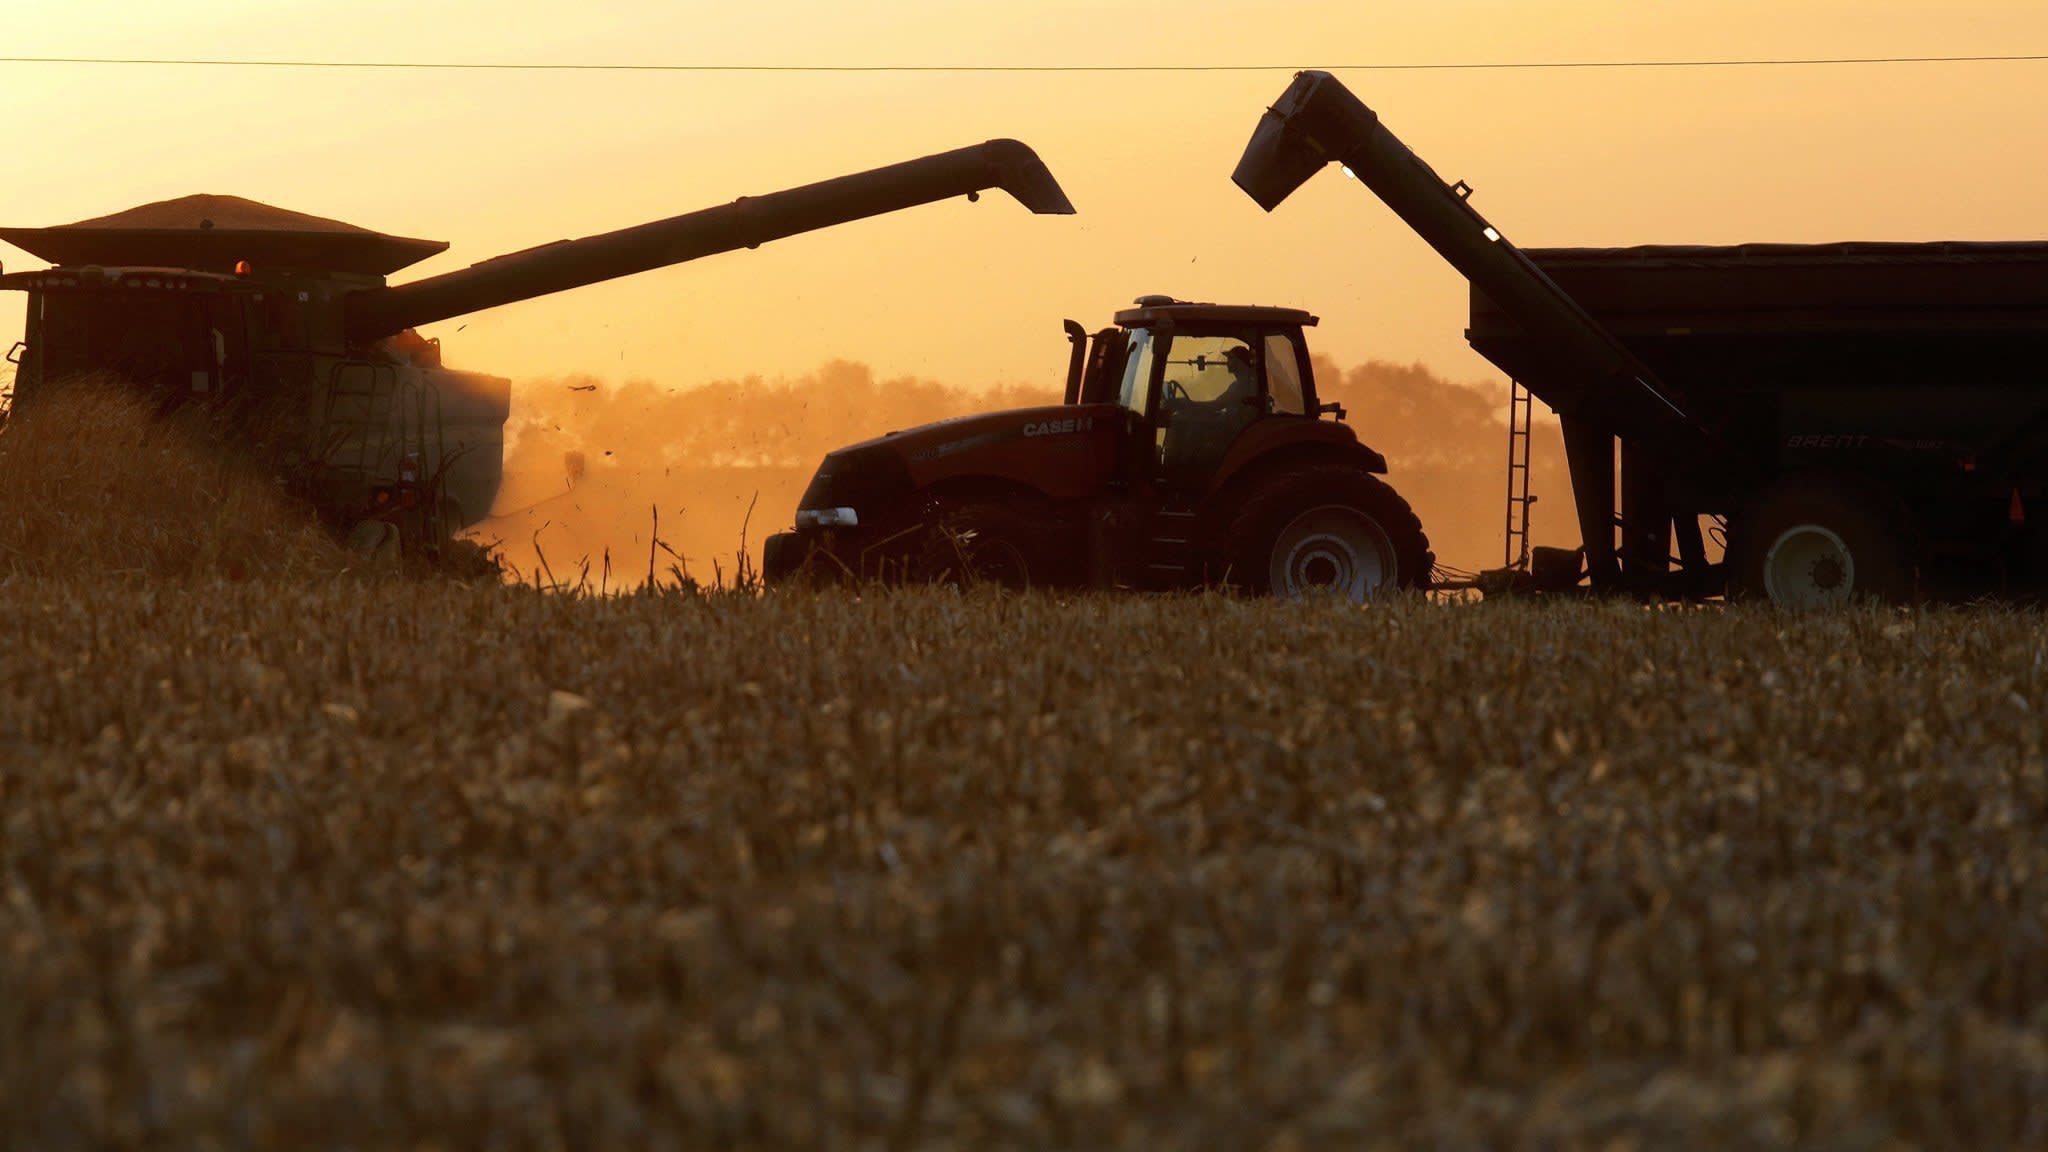 Surprise threat in US tax law hits agricultural companies